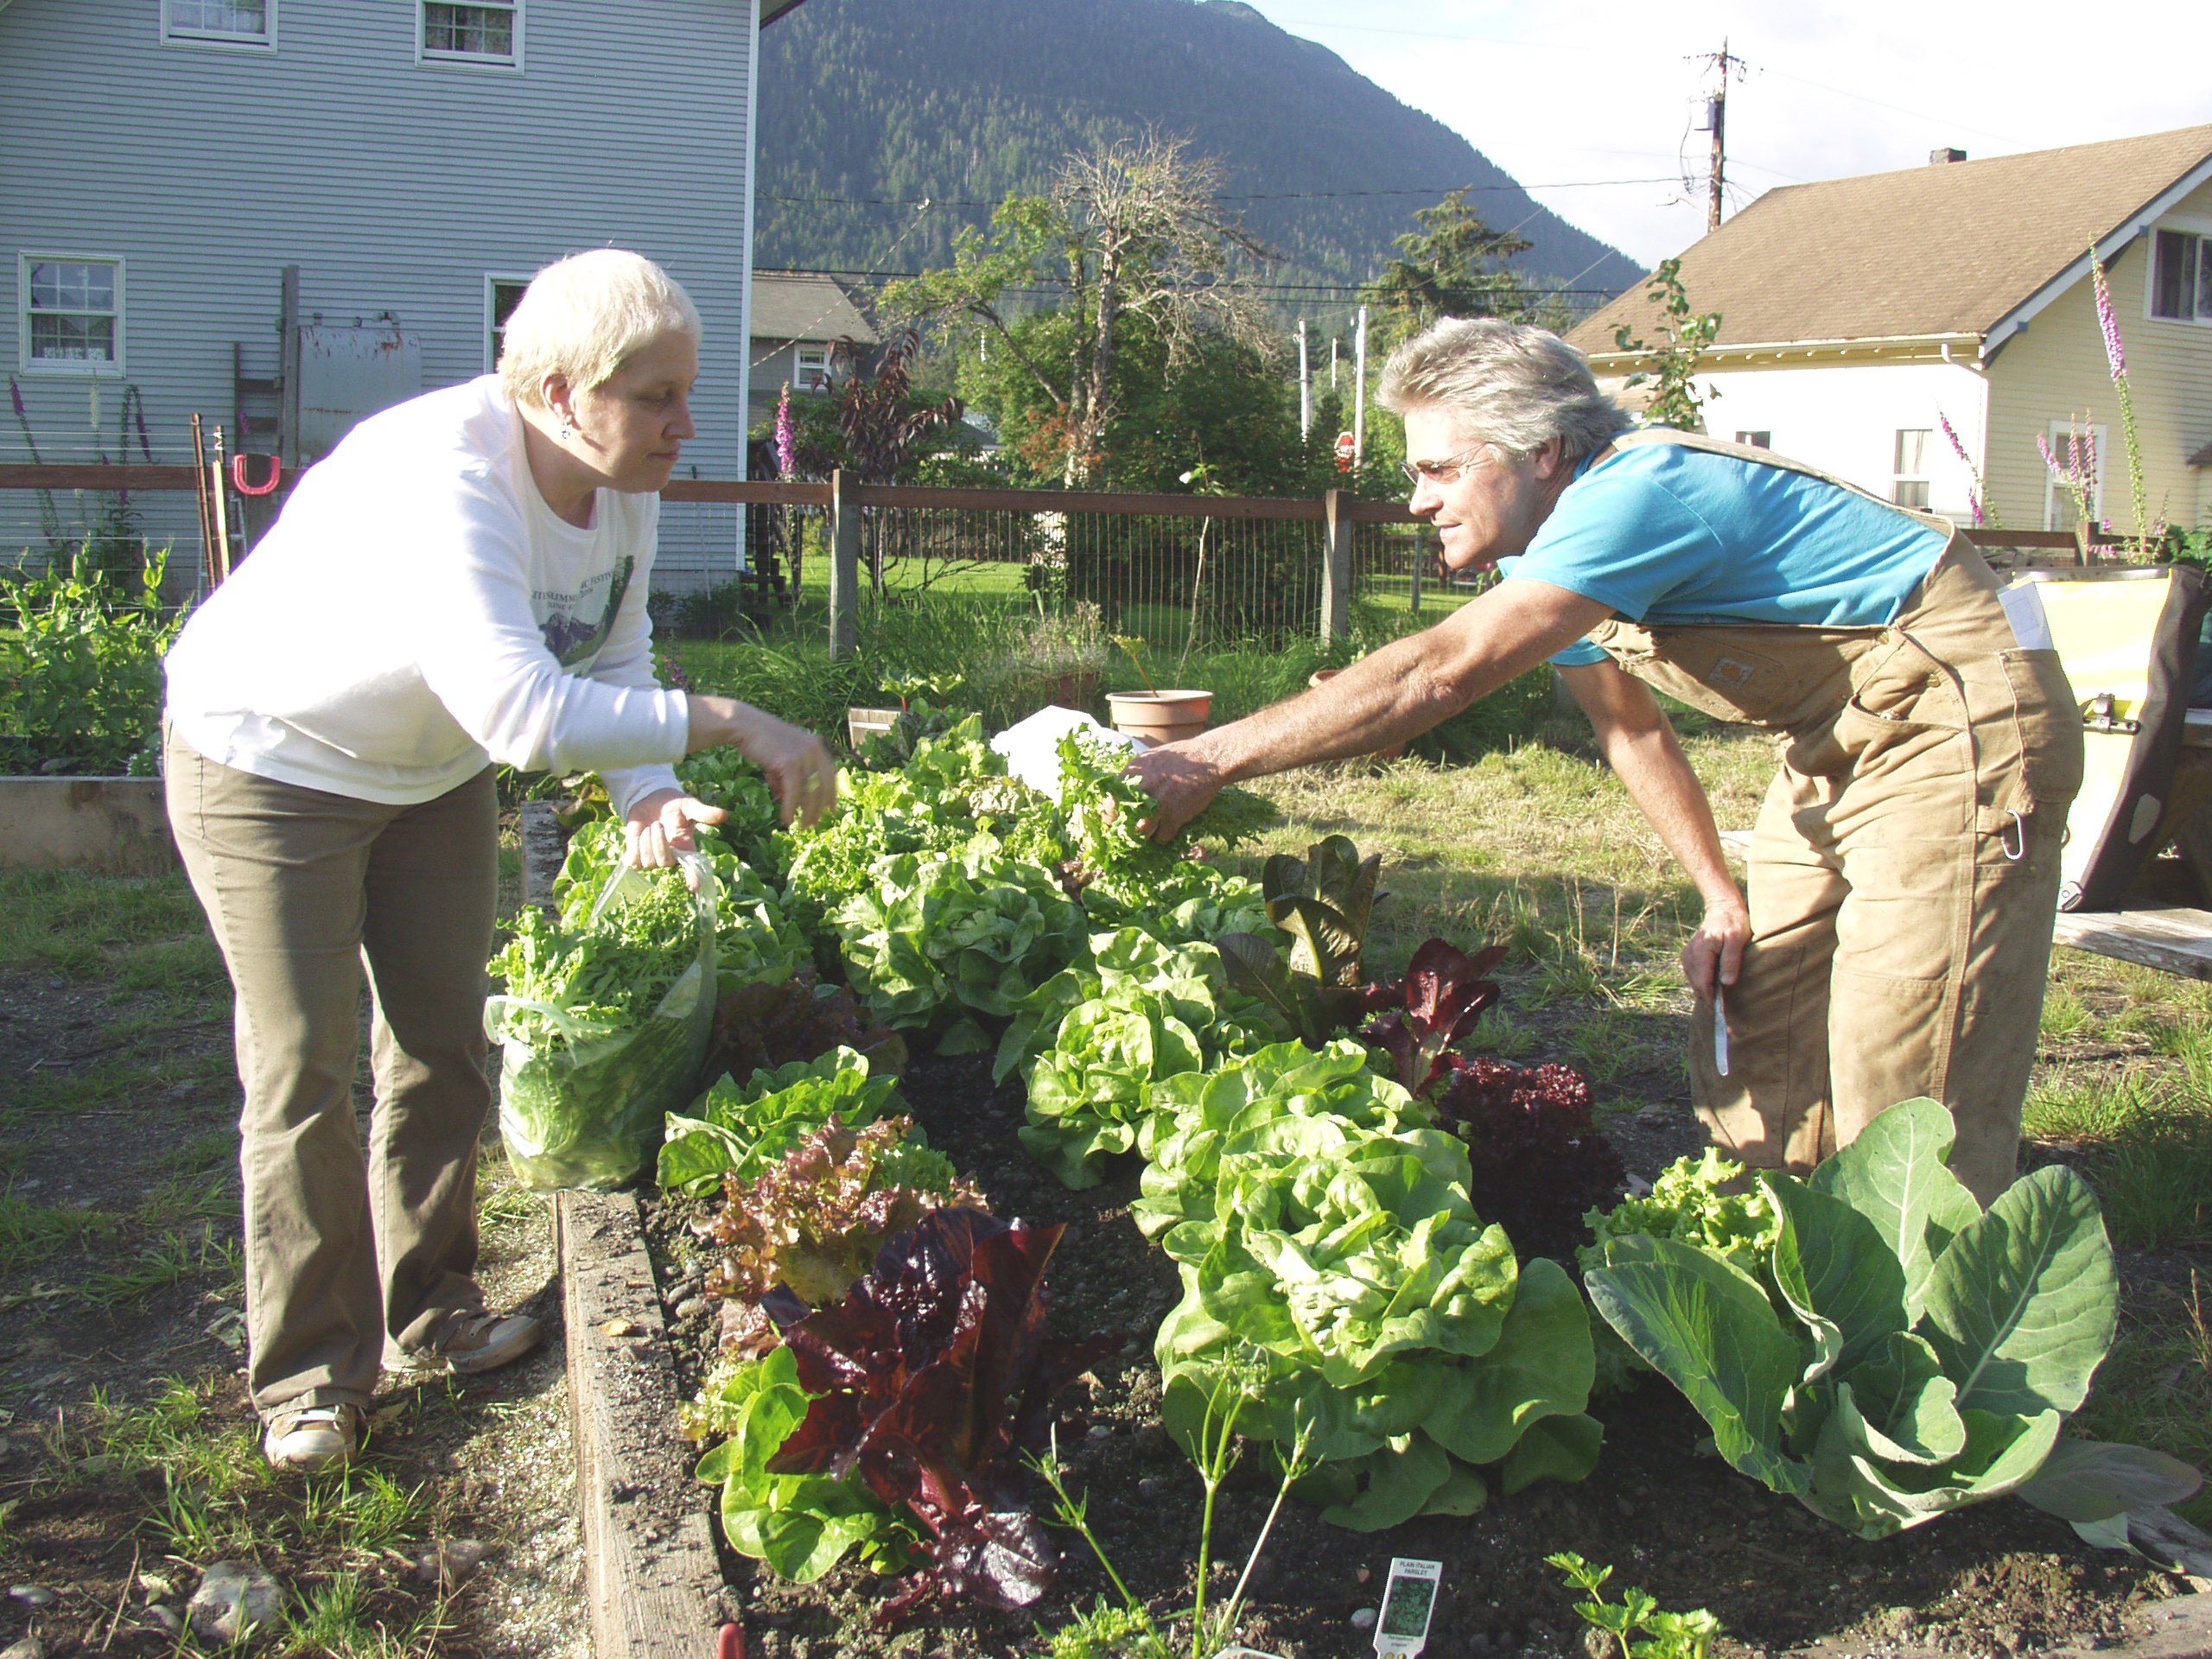 Cindy Westergaard, left, and Kerry MacLane pick lettuce from the St. Peter's Fellowship Farm community garden in August 2008